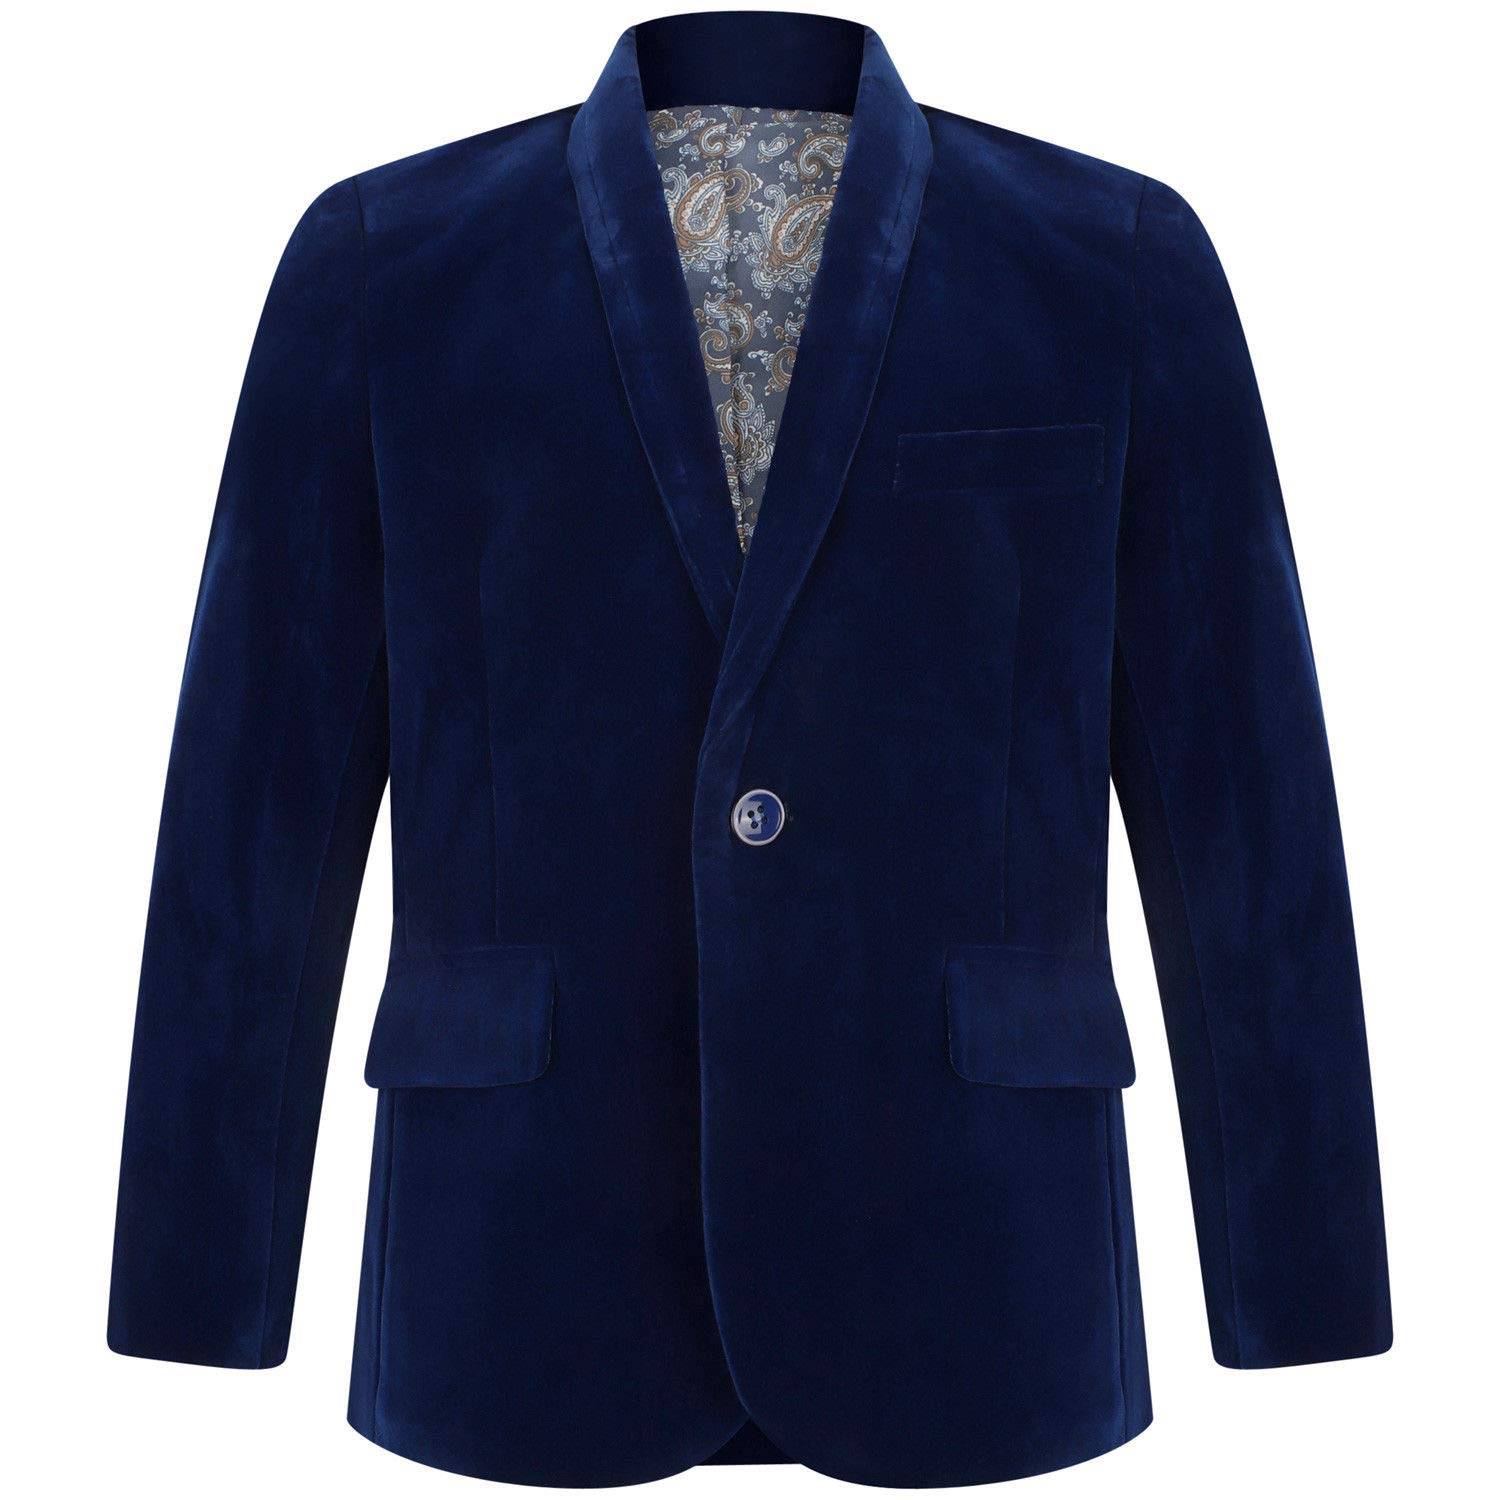 Boys Velvet Blazer Jacket Black Navy Burgundy 1 to 15 Years 2, Navy